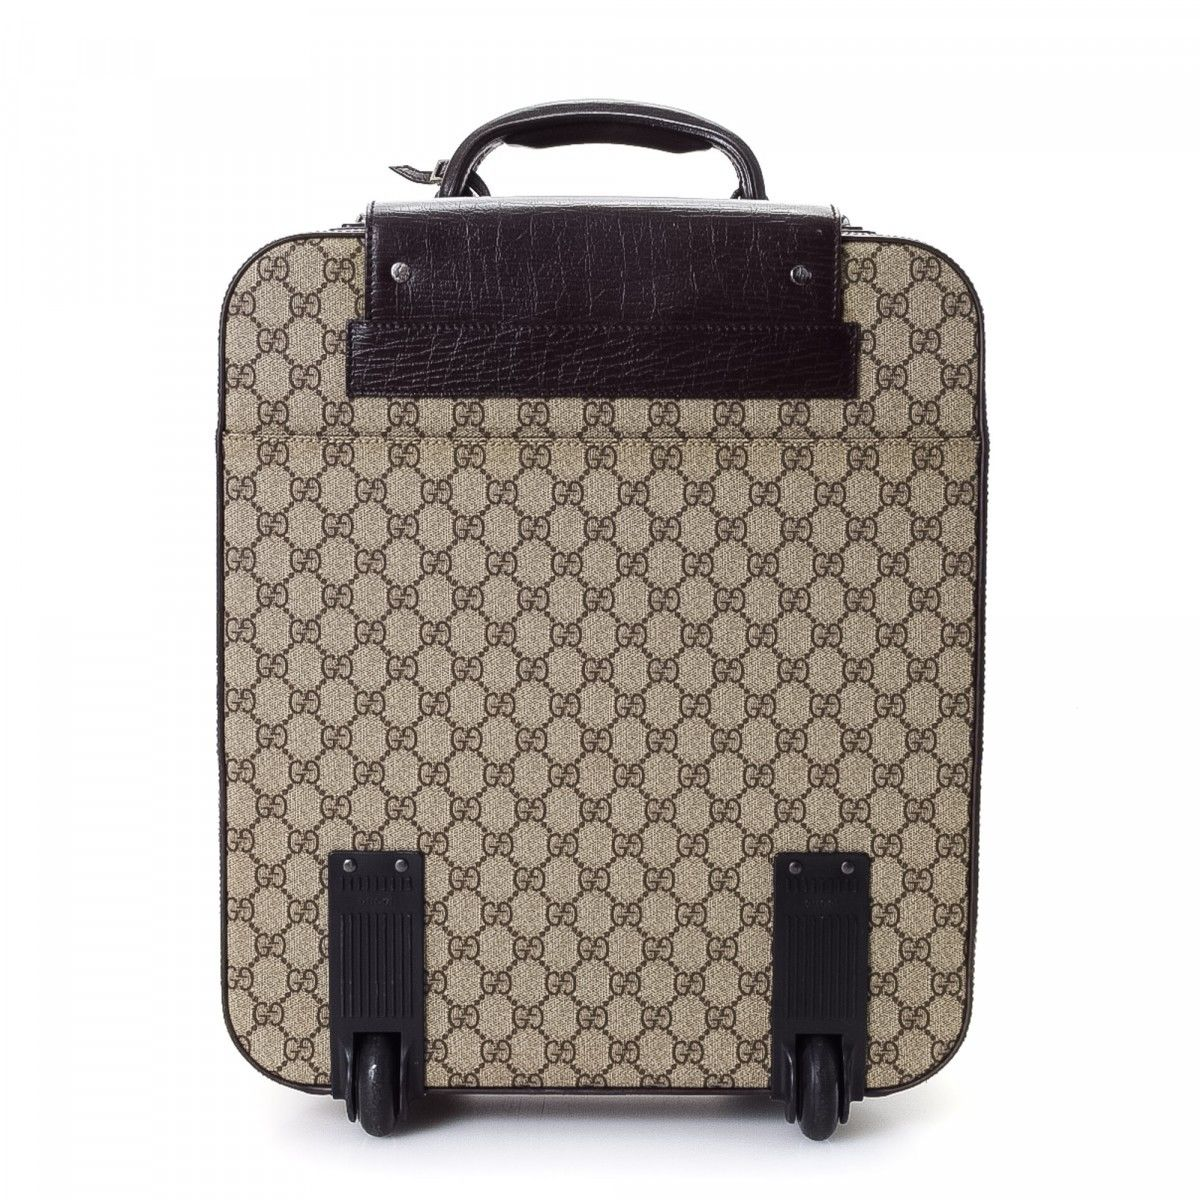 c9c3a9823ef GG Supreme Web Suitcase. Free Shipping. The authenticity of this vintage  Gucci Web Suitcase trunk is guaranteed by LXRandCo. Crafted in gg supreme  coated ...